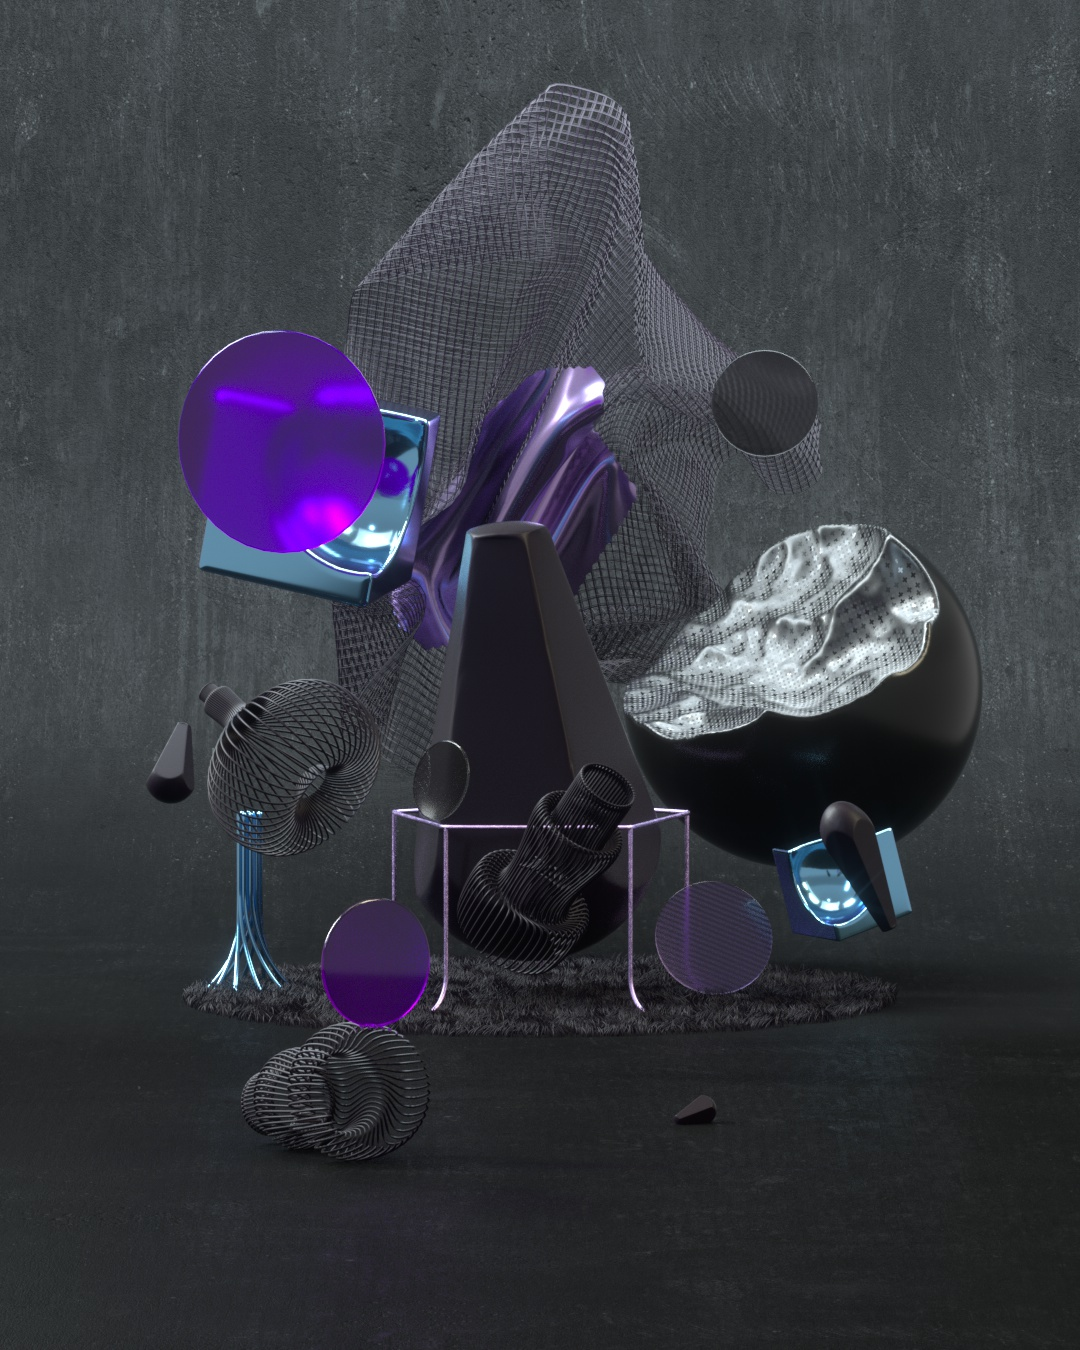 3D rendering first world black materials with purple highlights